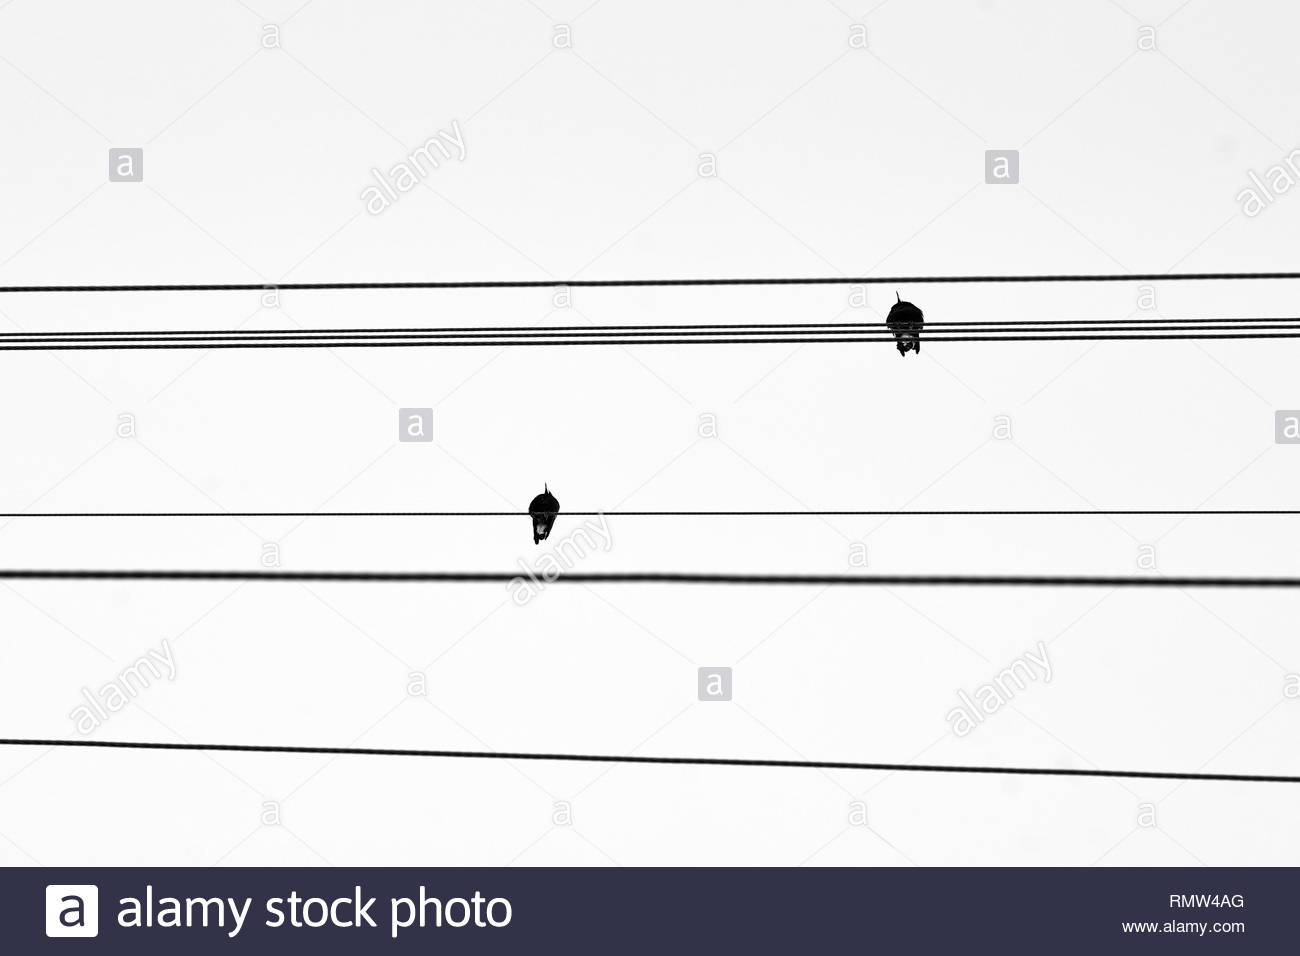 Two magpies perched on powerlines - a black and white, minimalist image evoking contemplation of themes such as man vs nature, and the energy crisis. - Stock Image